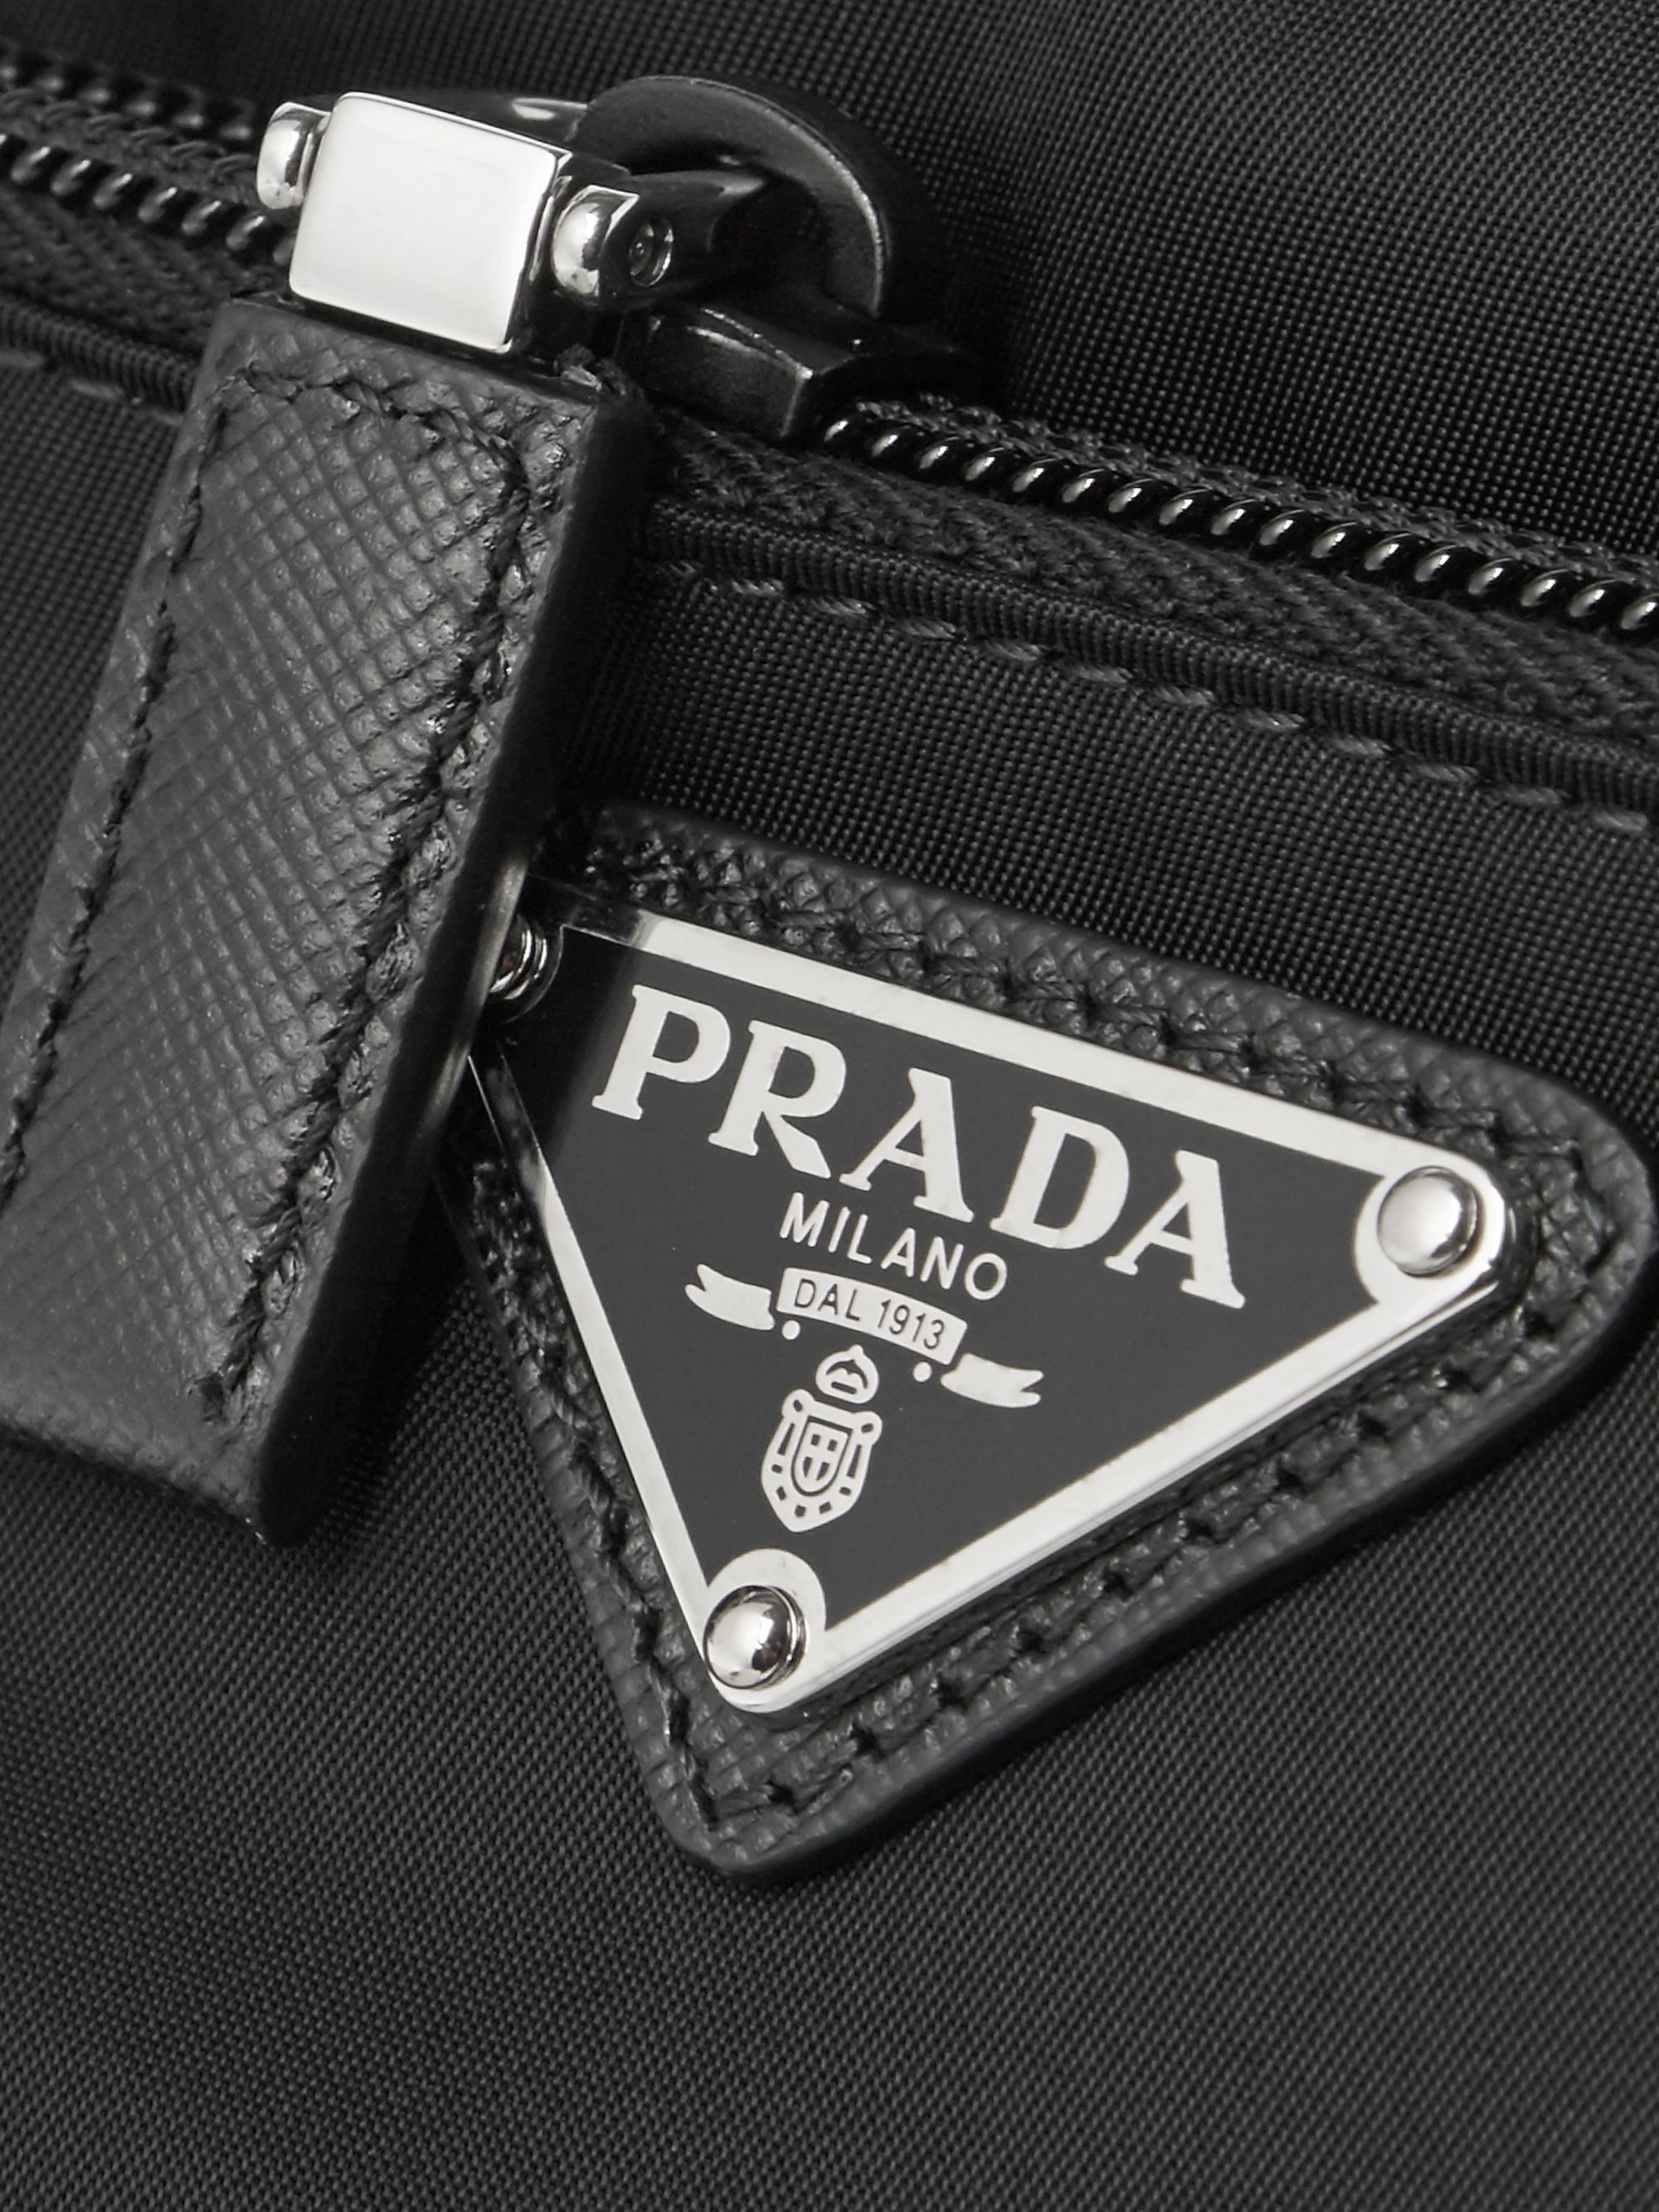 Prada Saffiano Leather-Trimmed Nylon Wash Bag